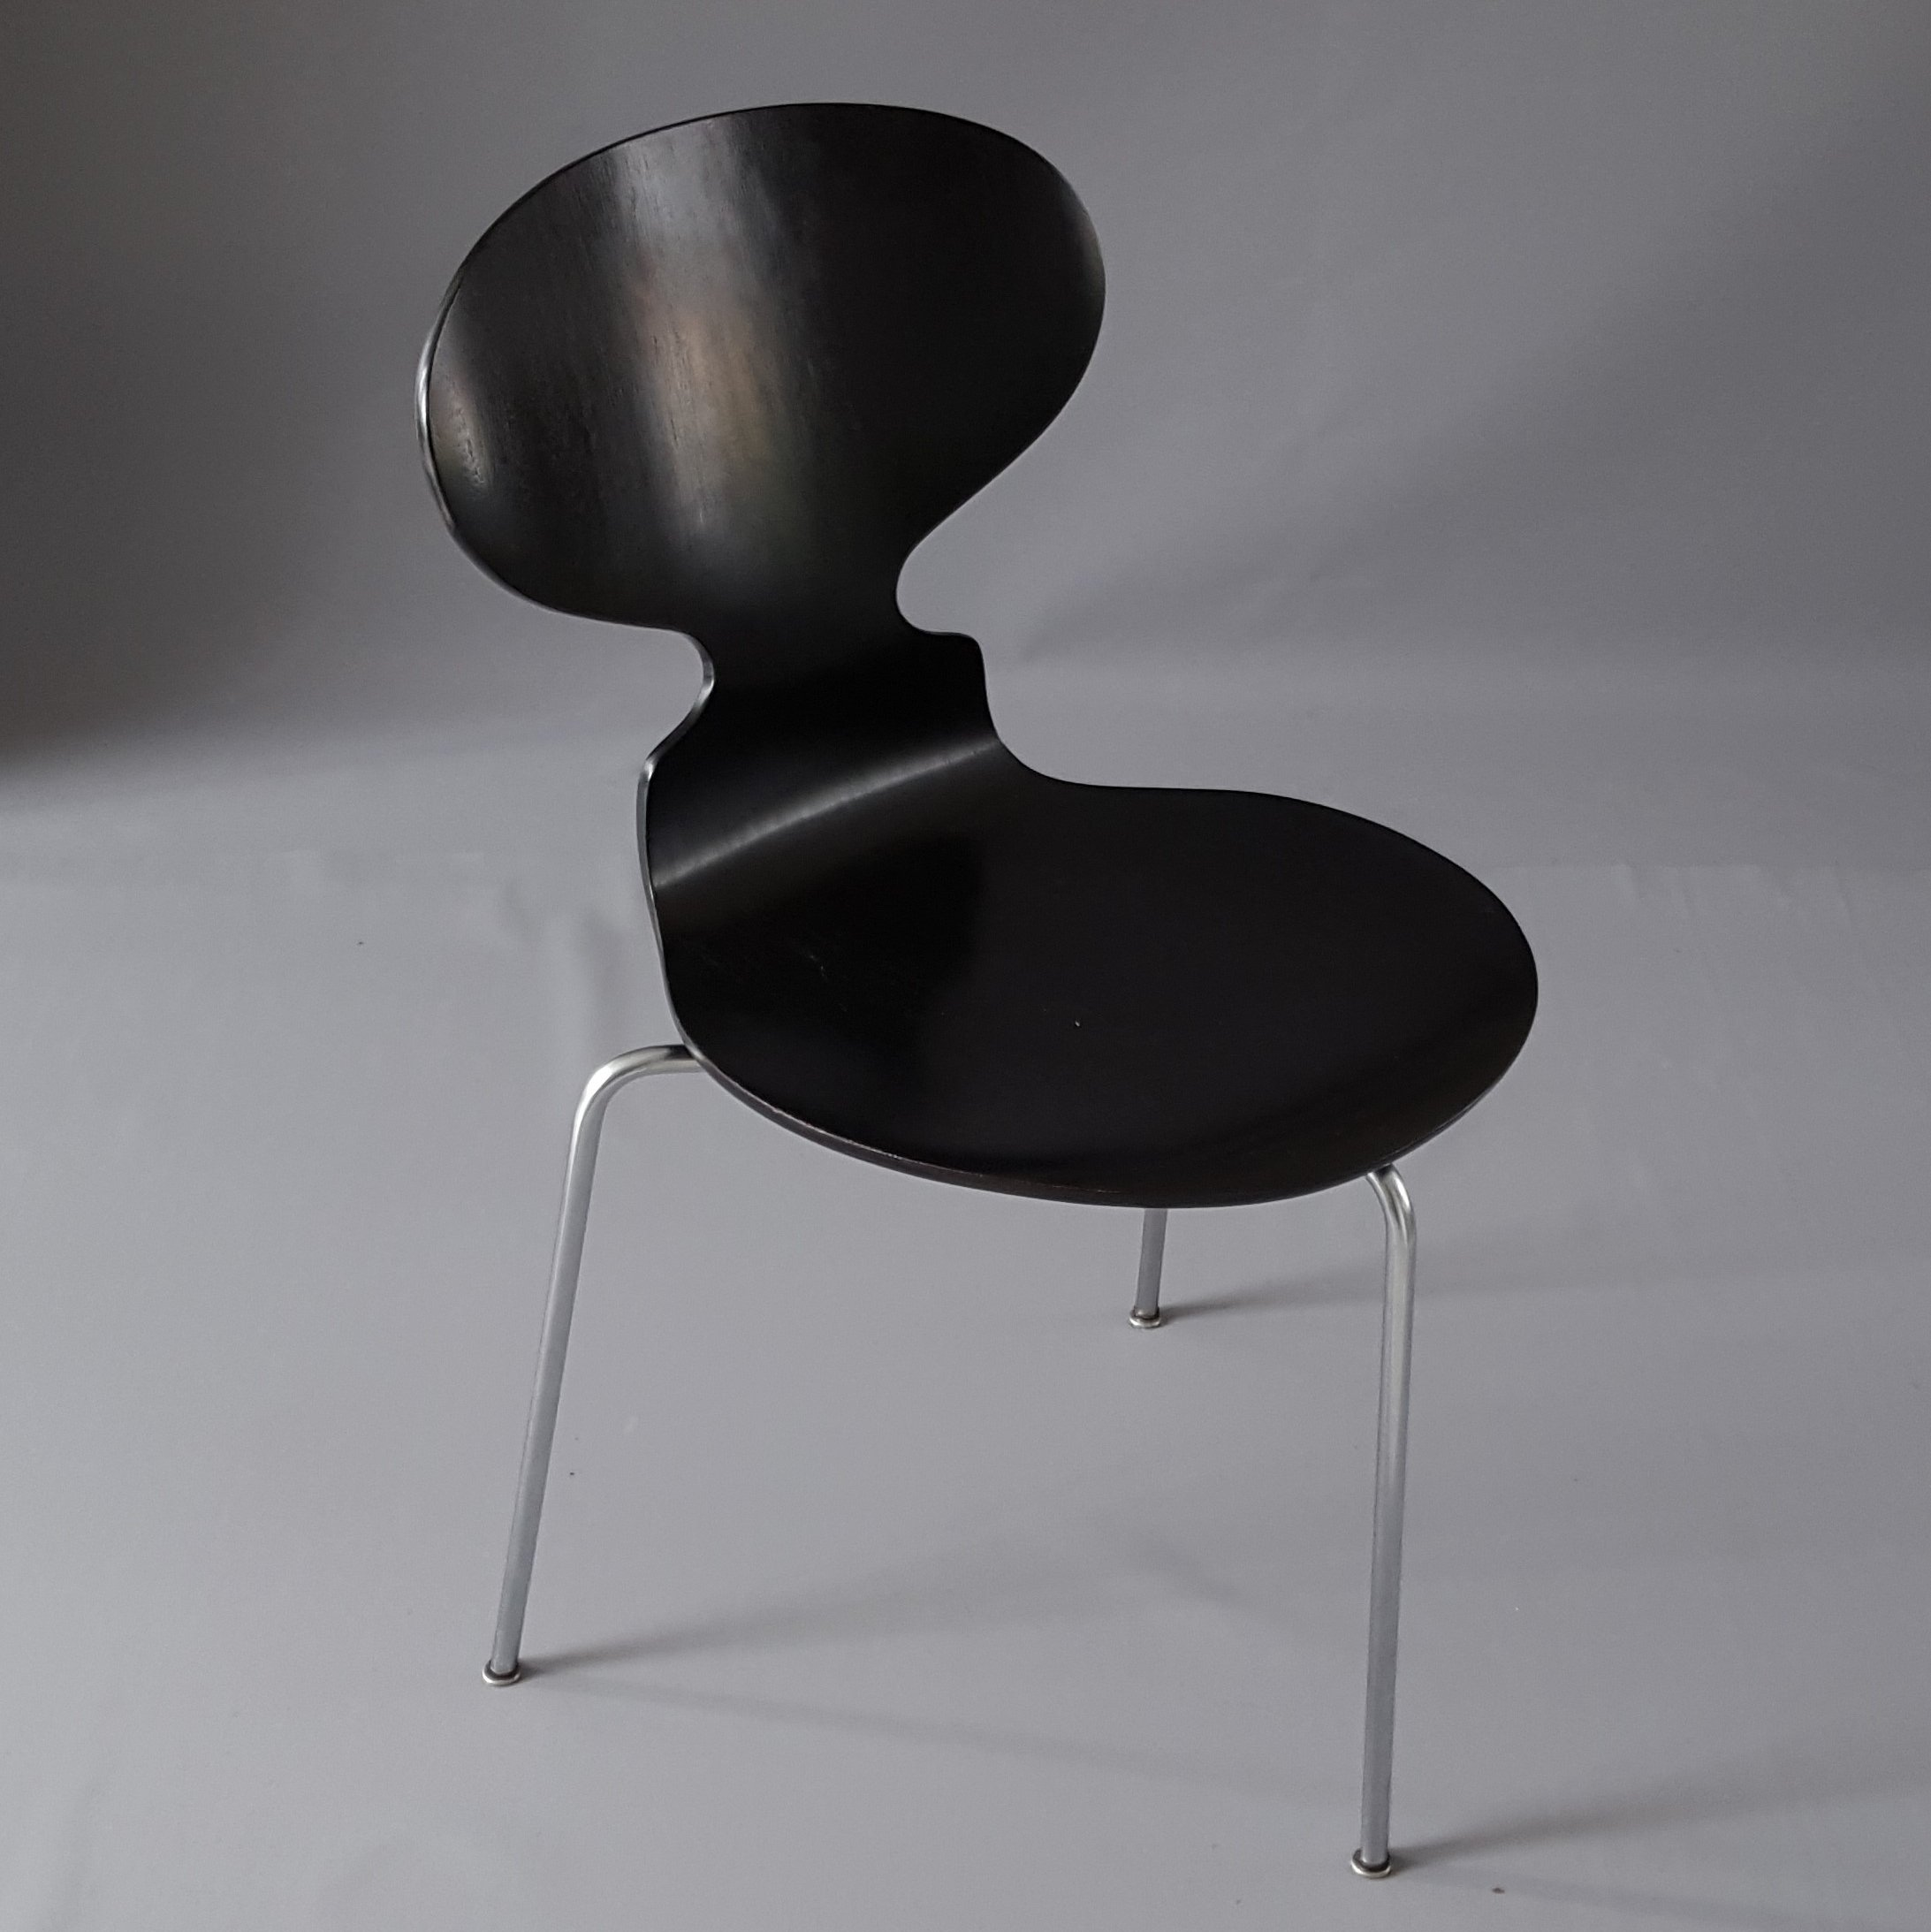 ant chair 3101 by arne jacobsen for fritz hansen 1960s 68196. Black Bedroom Furniture Sets. Home Design Ideas